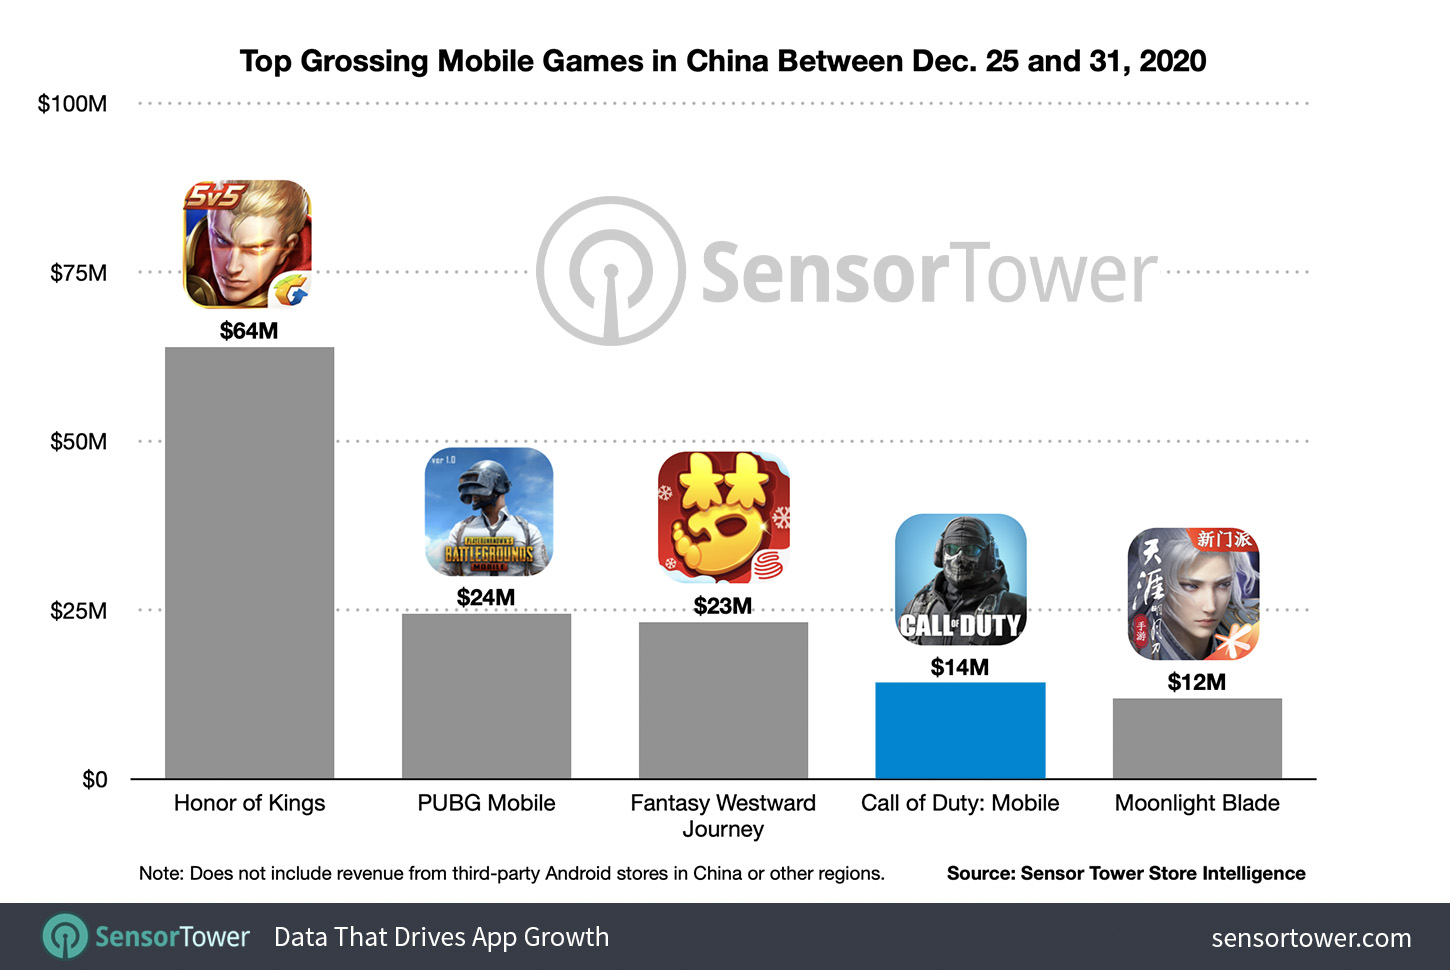 Top Grossing Mobile Games in China Between December 25 and 31, 2020